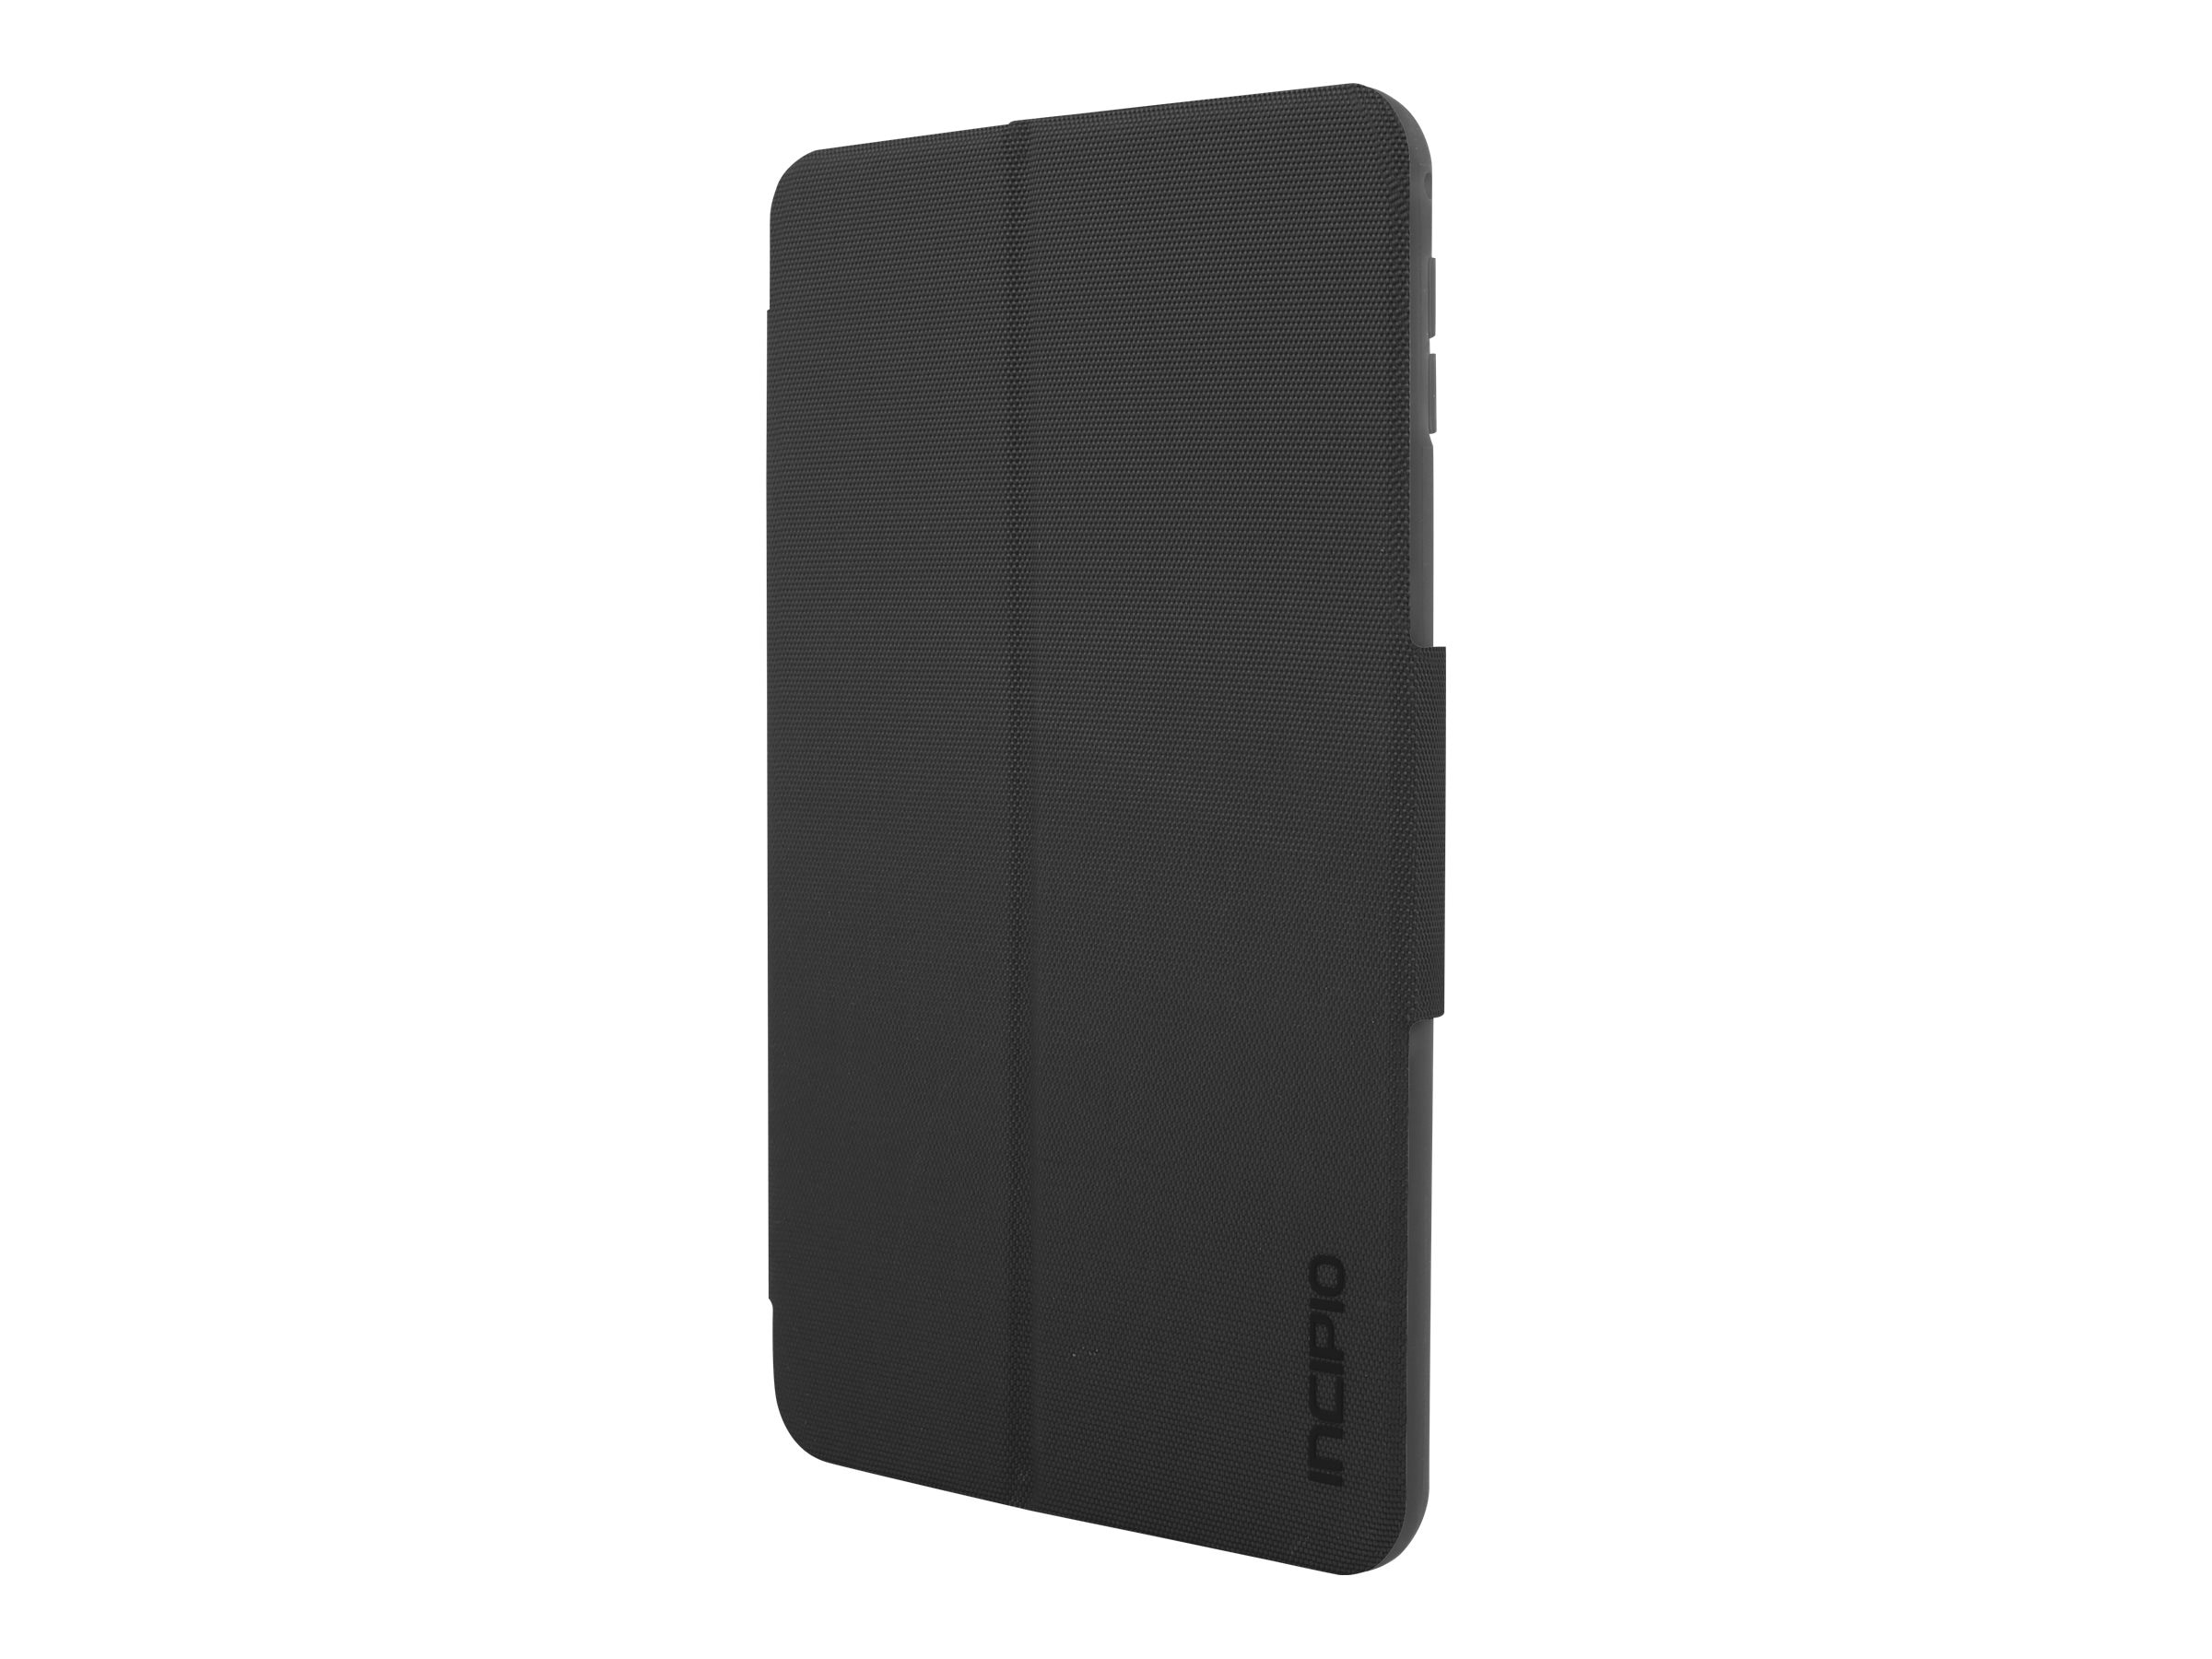 Incipio Clarion Folio for iPad mini 4, Black